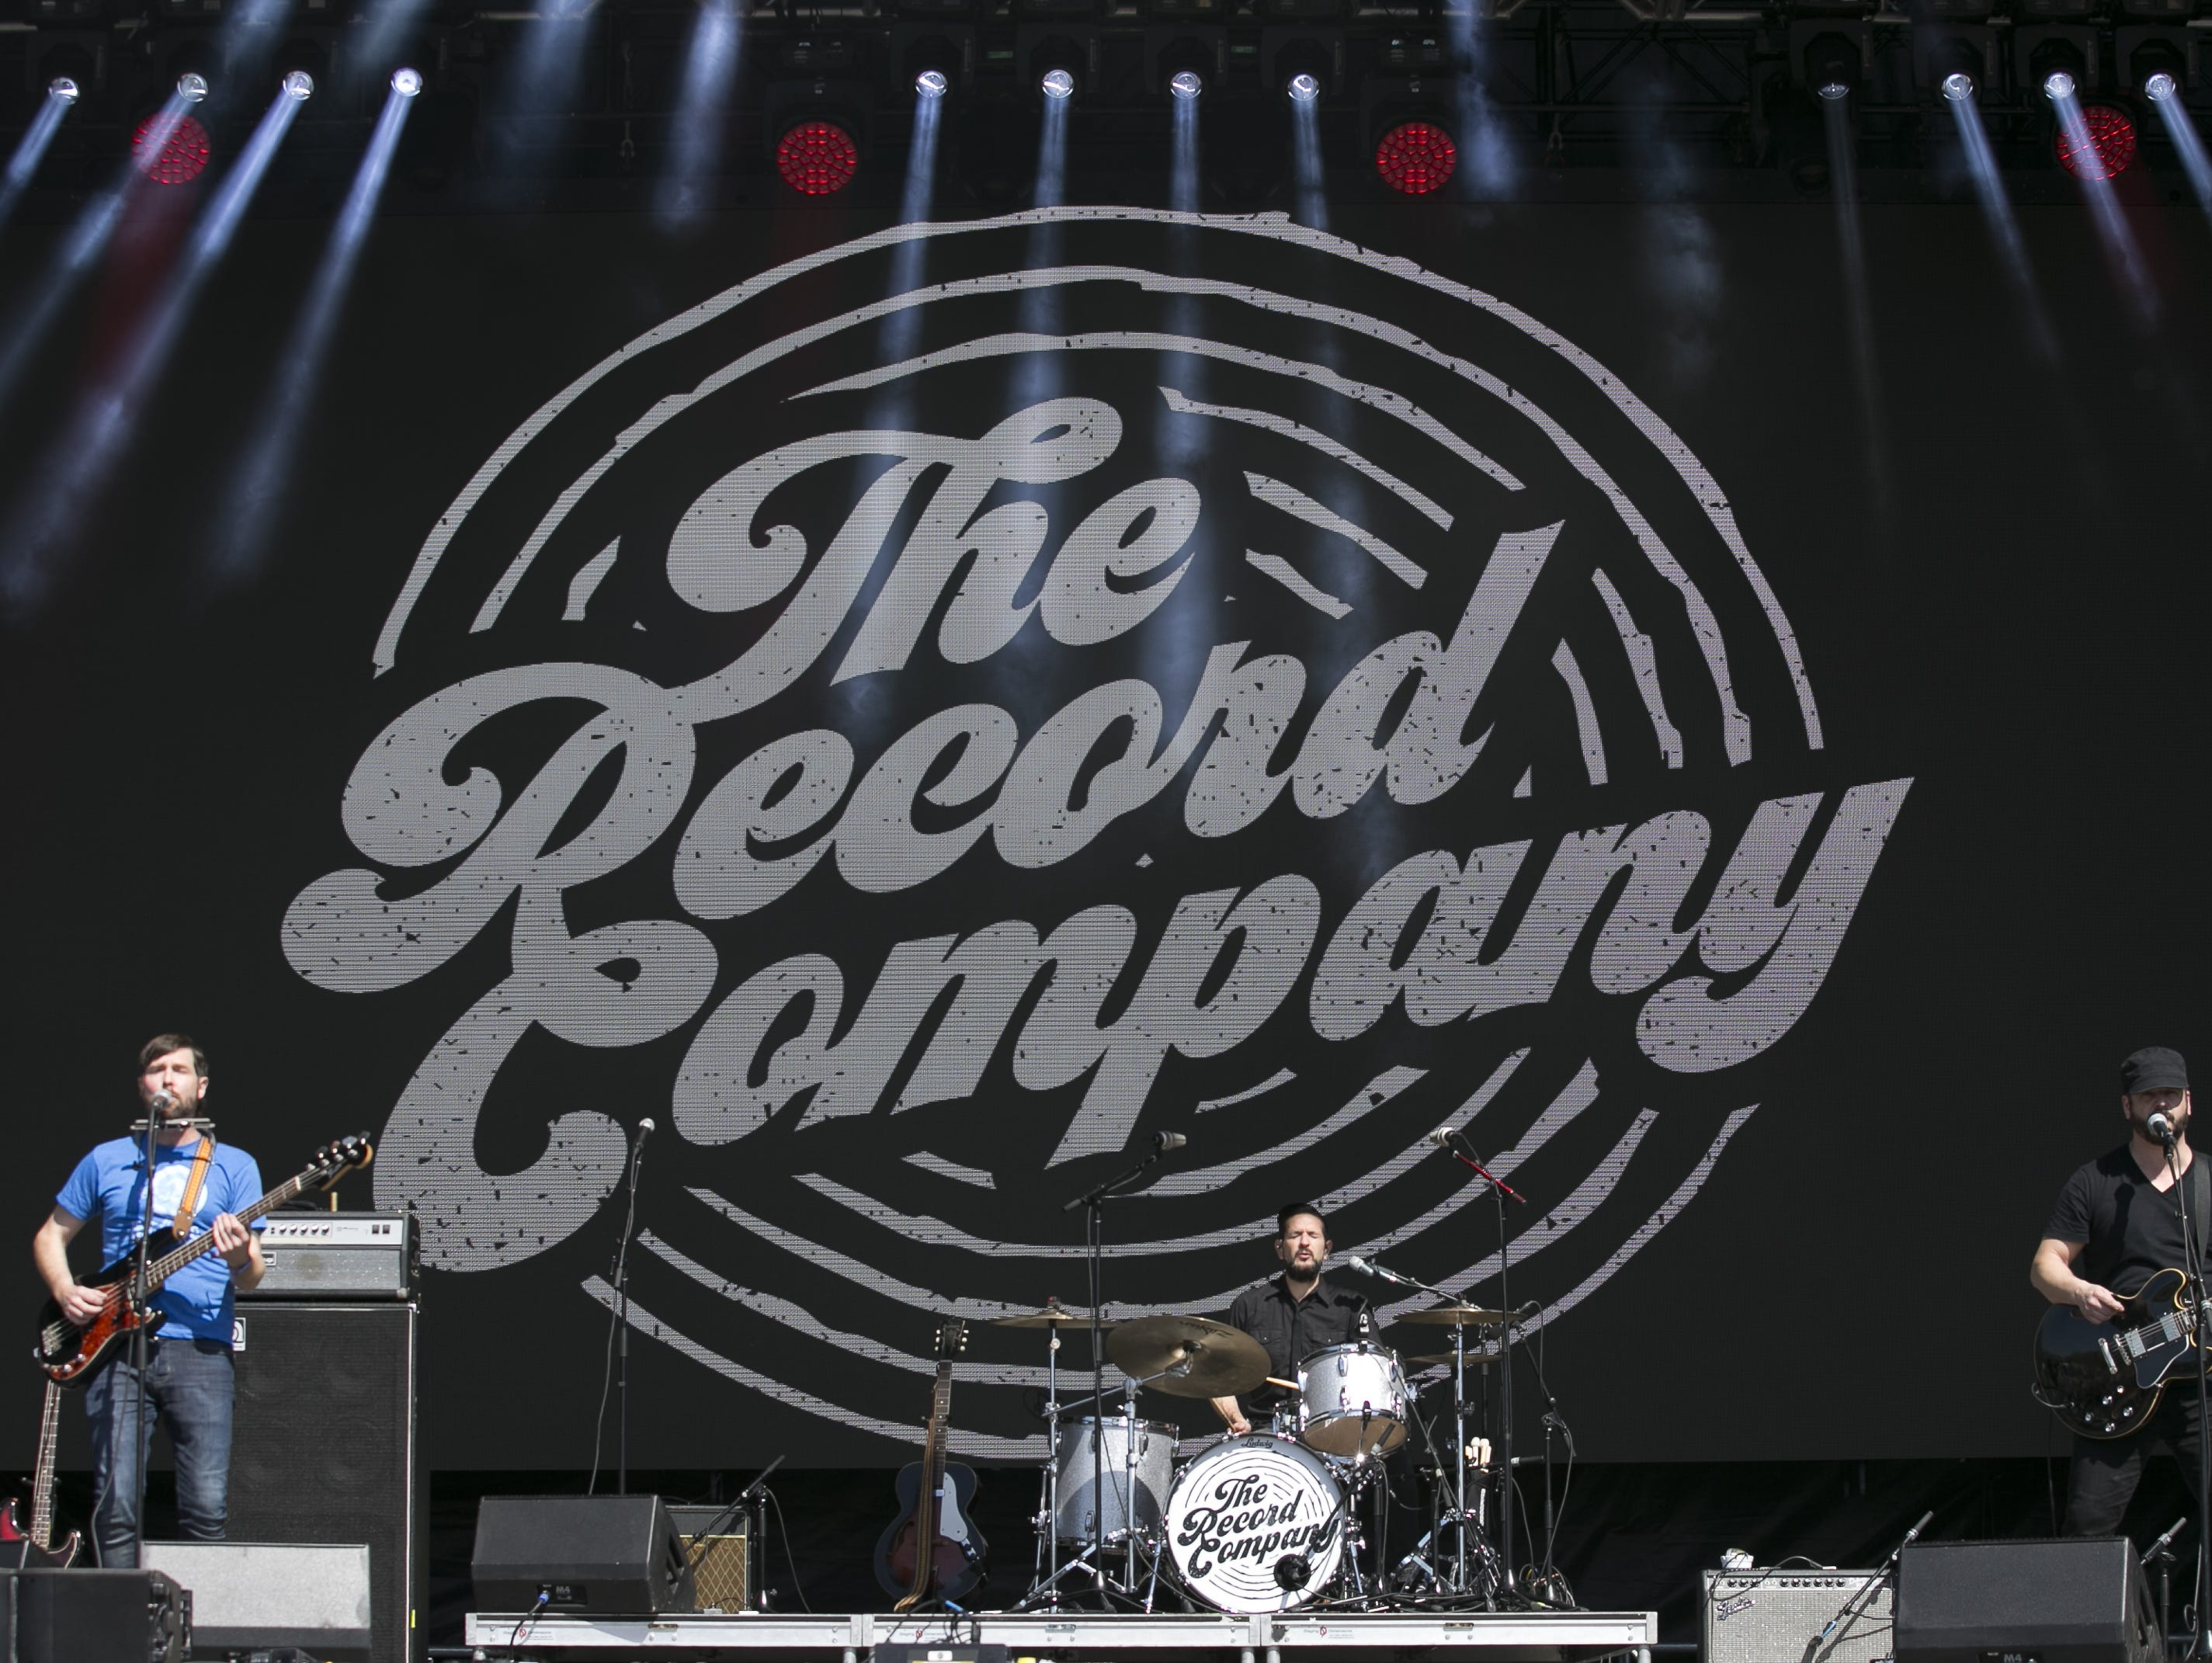 The Record Company performs at the Innings Festival at Tempe Beach Park in Ariz. on Sunday, March 3, 2019.